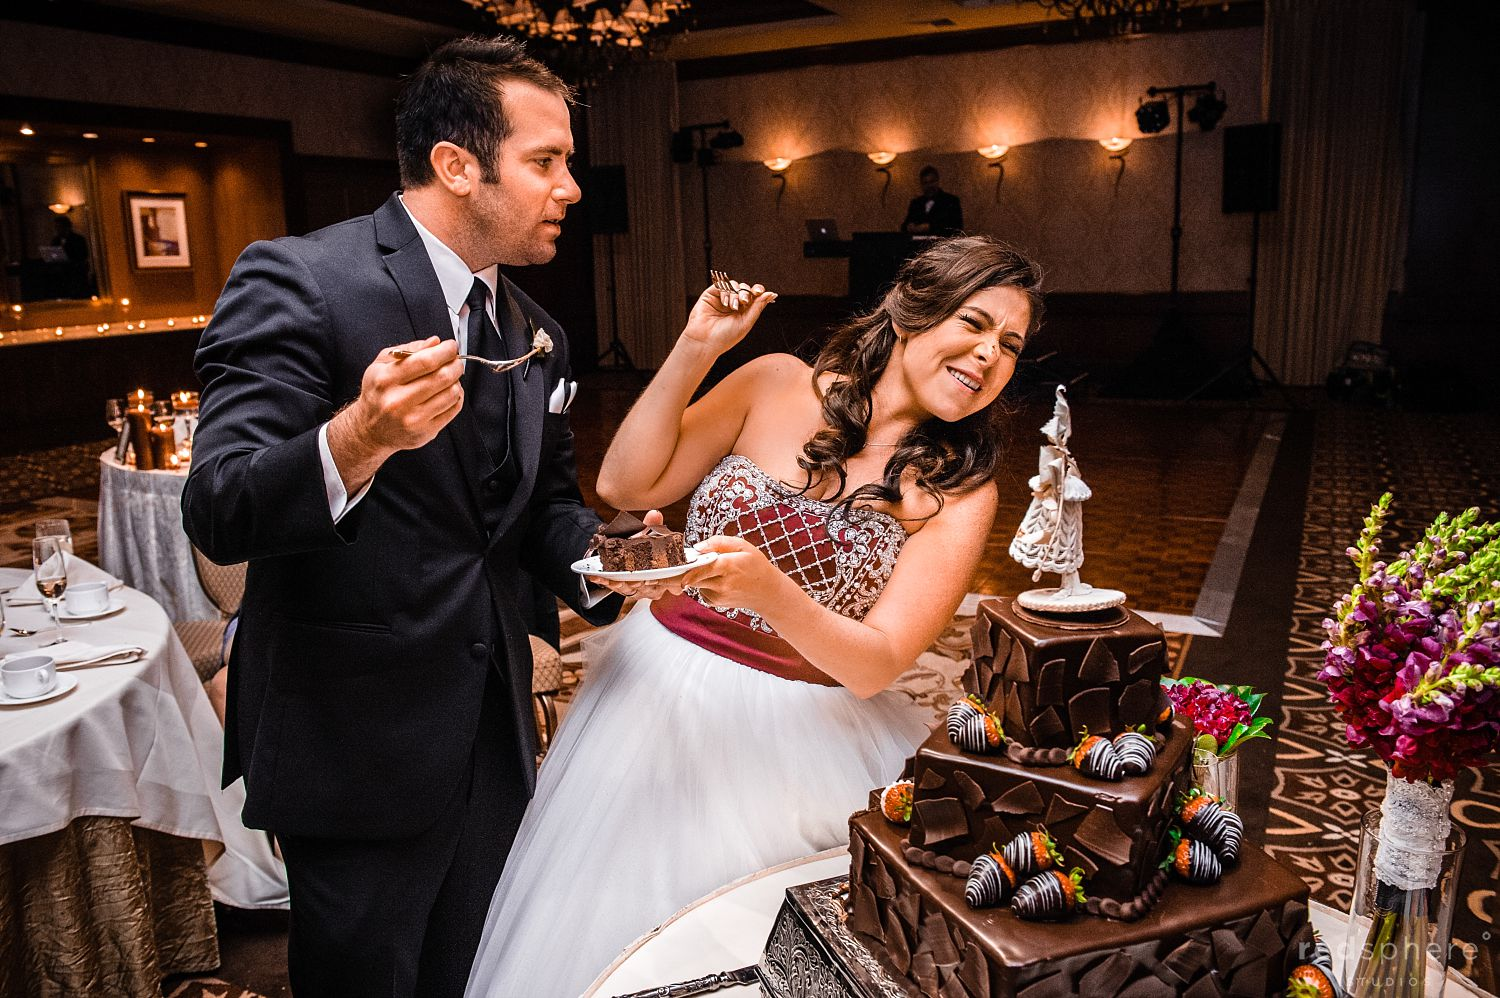 Bride and Groom Share Cake at The Inn at Spanish Bay After Party